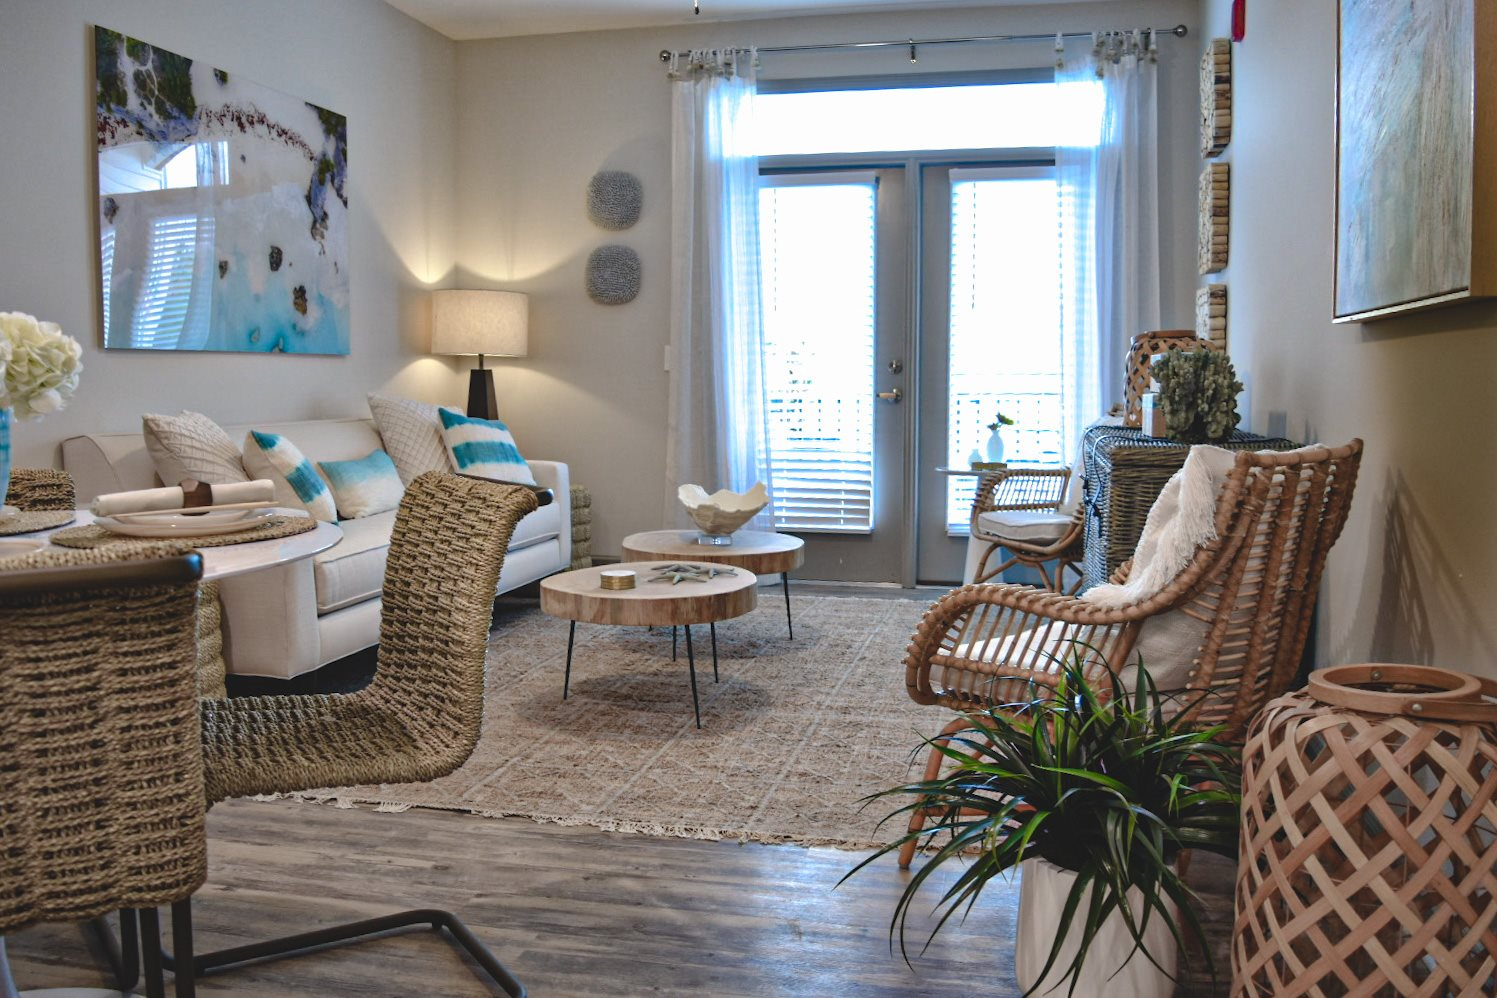 Coastal inspired decor in apartment living room Hawthorne at Smith Creek